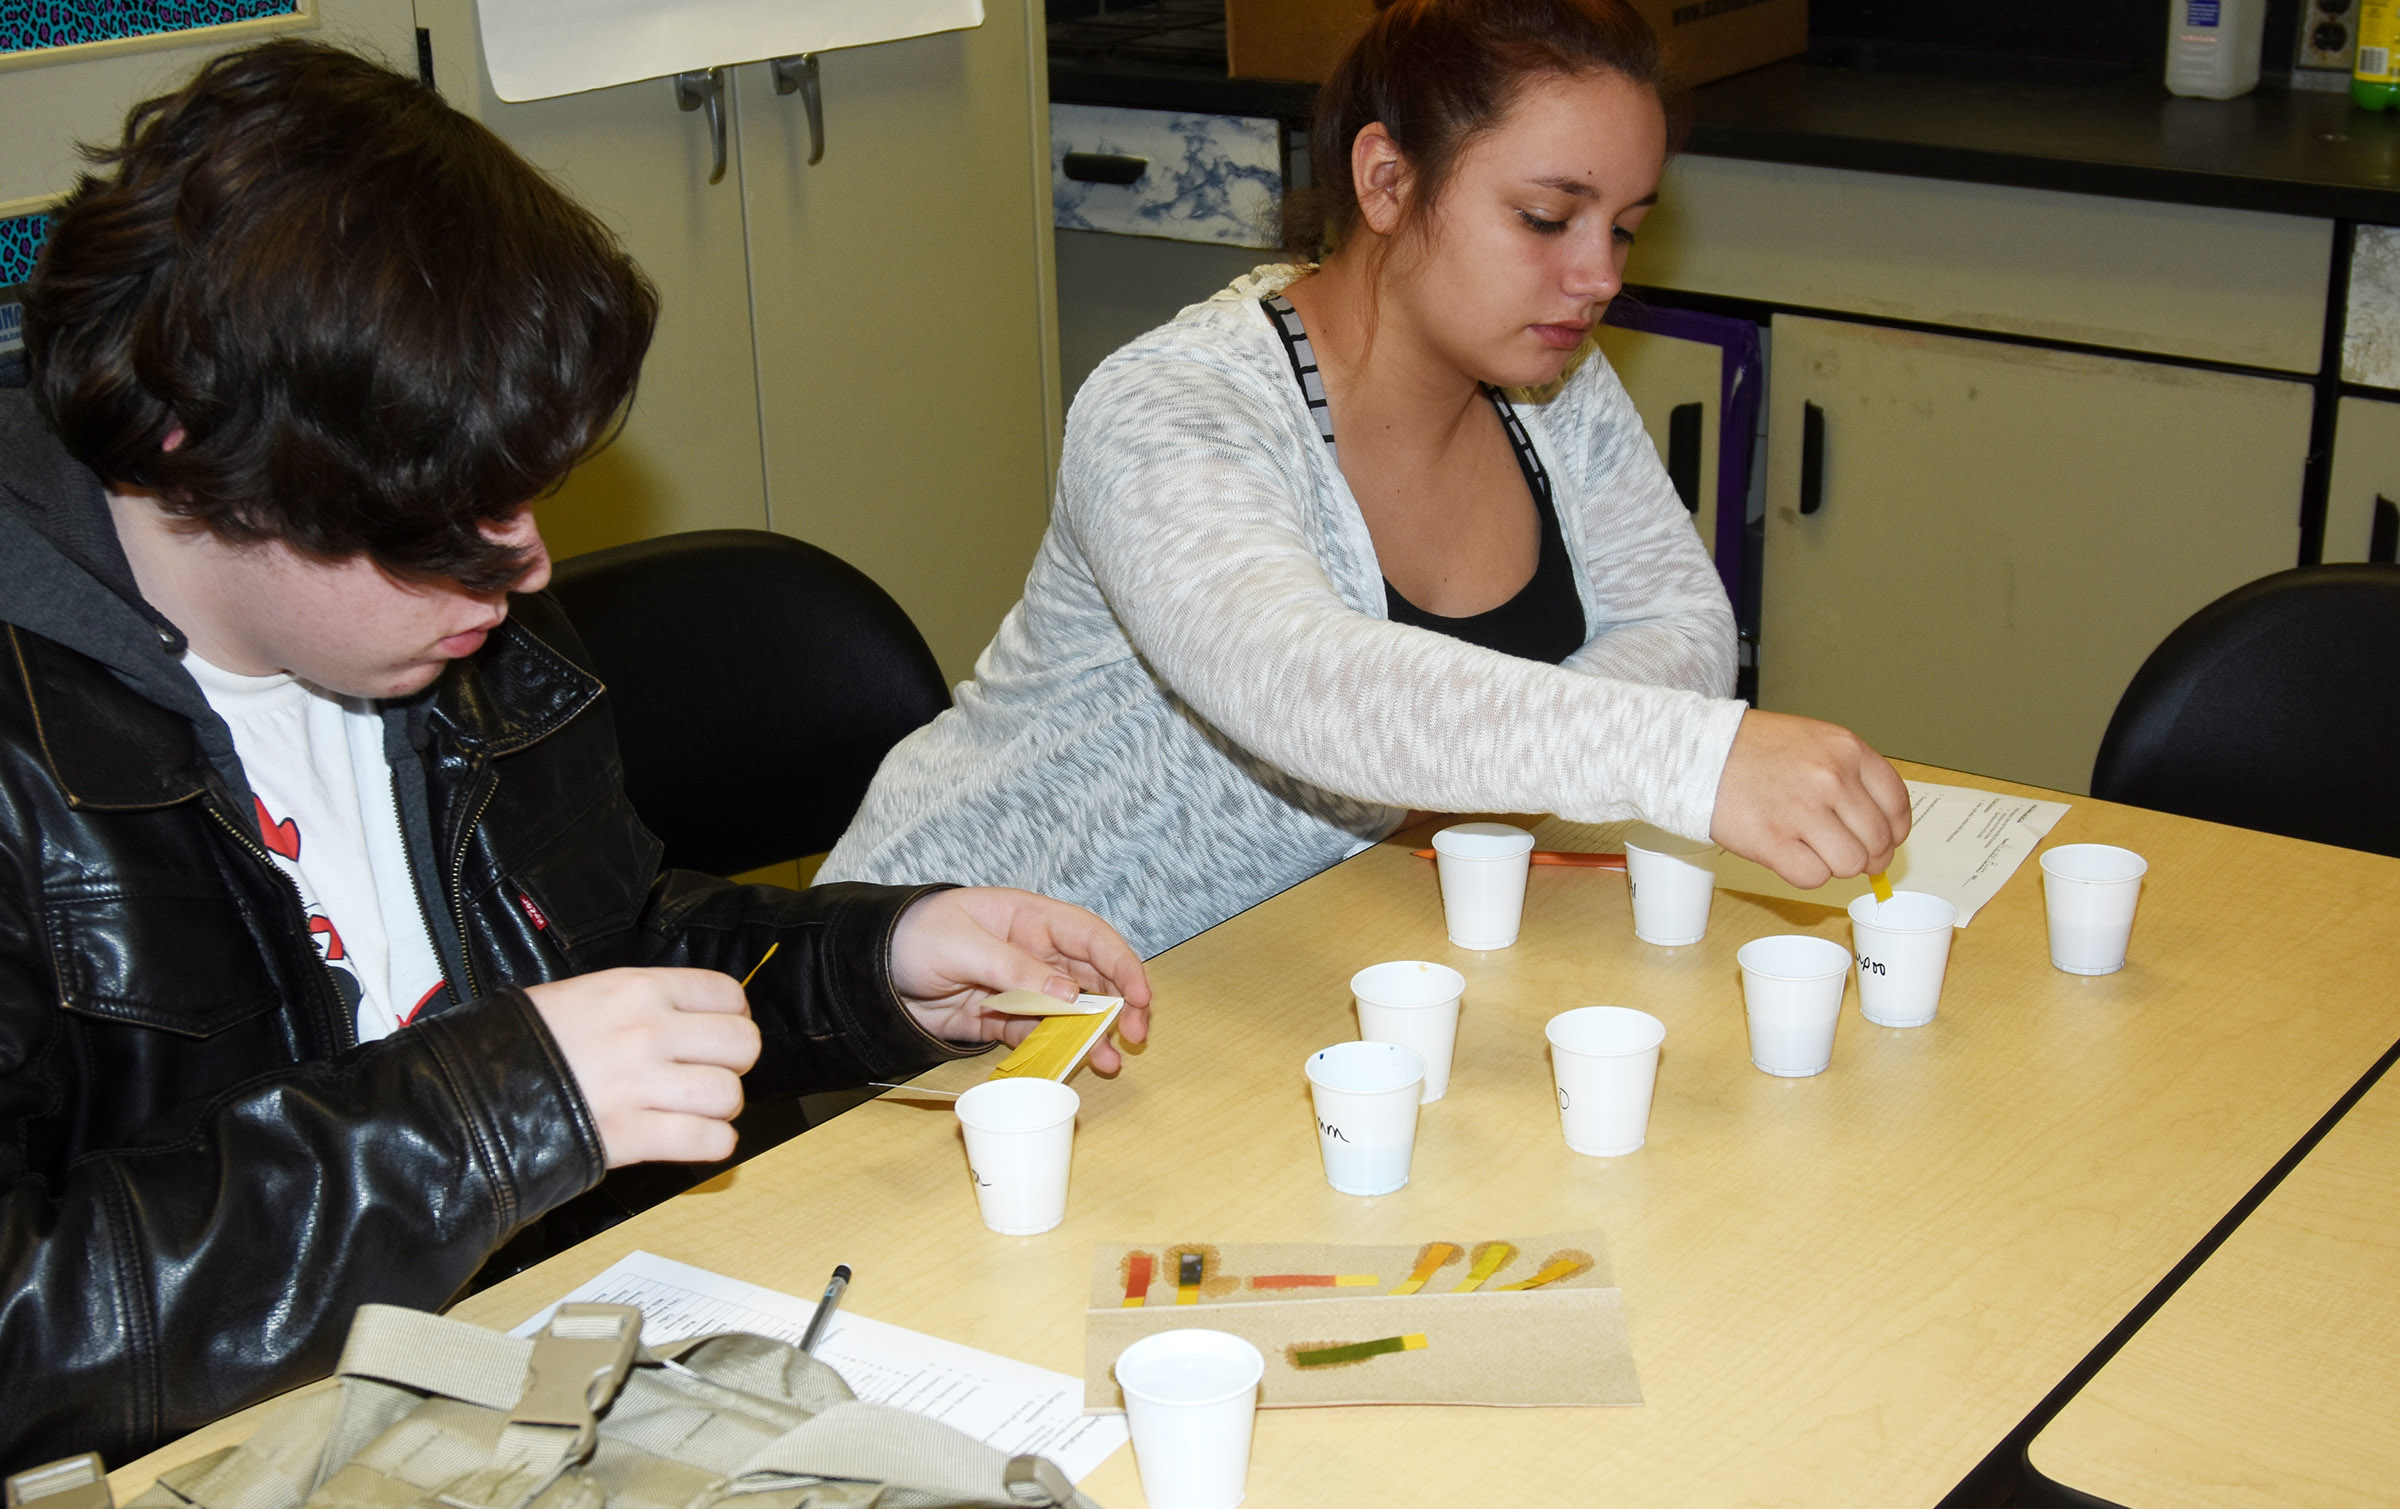 CHS sophomores Lathan Vincent, at left, and Autumn Babbs perform litmus tests.